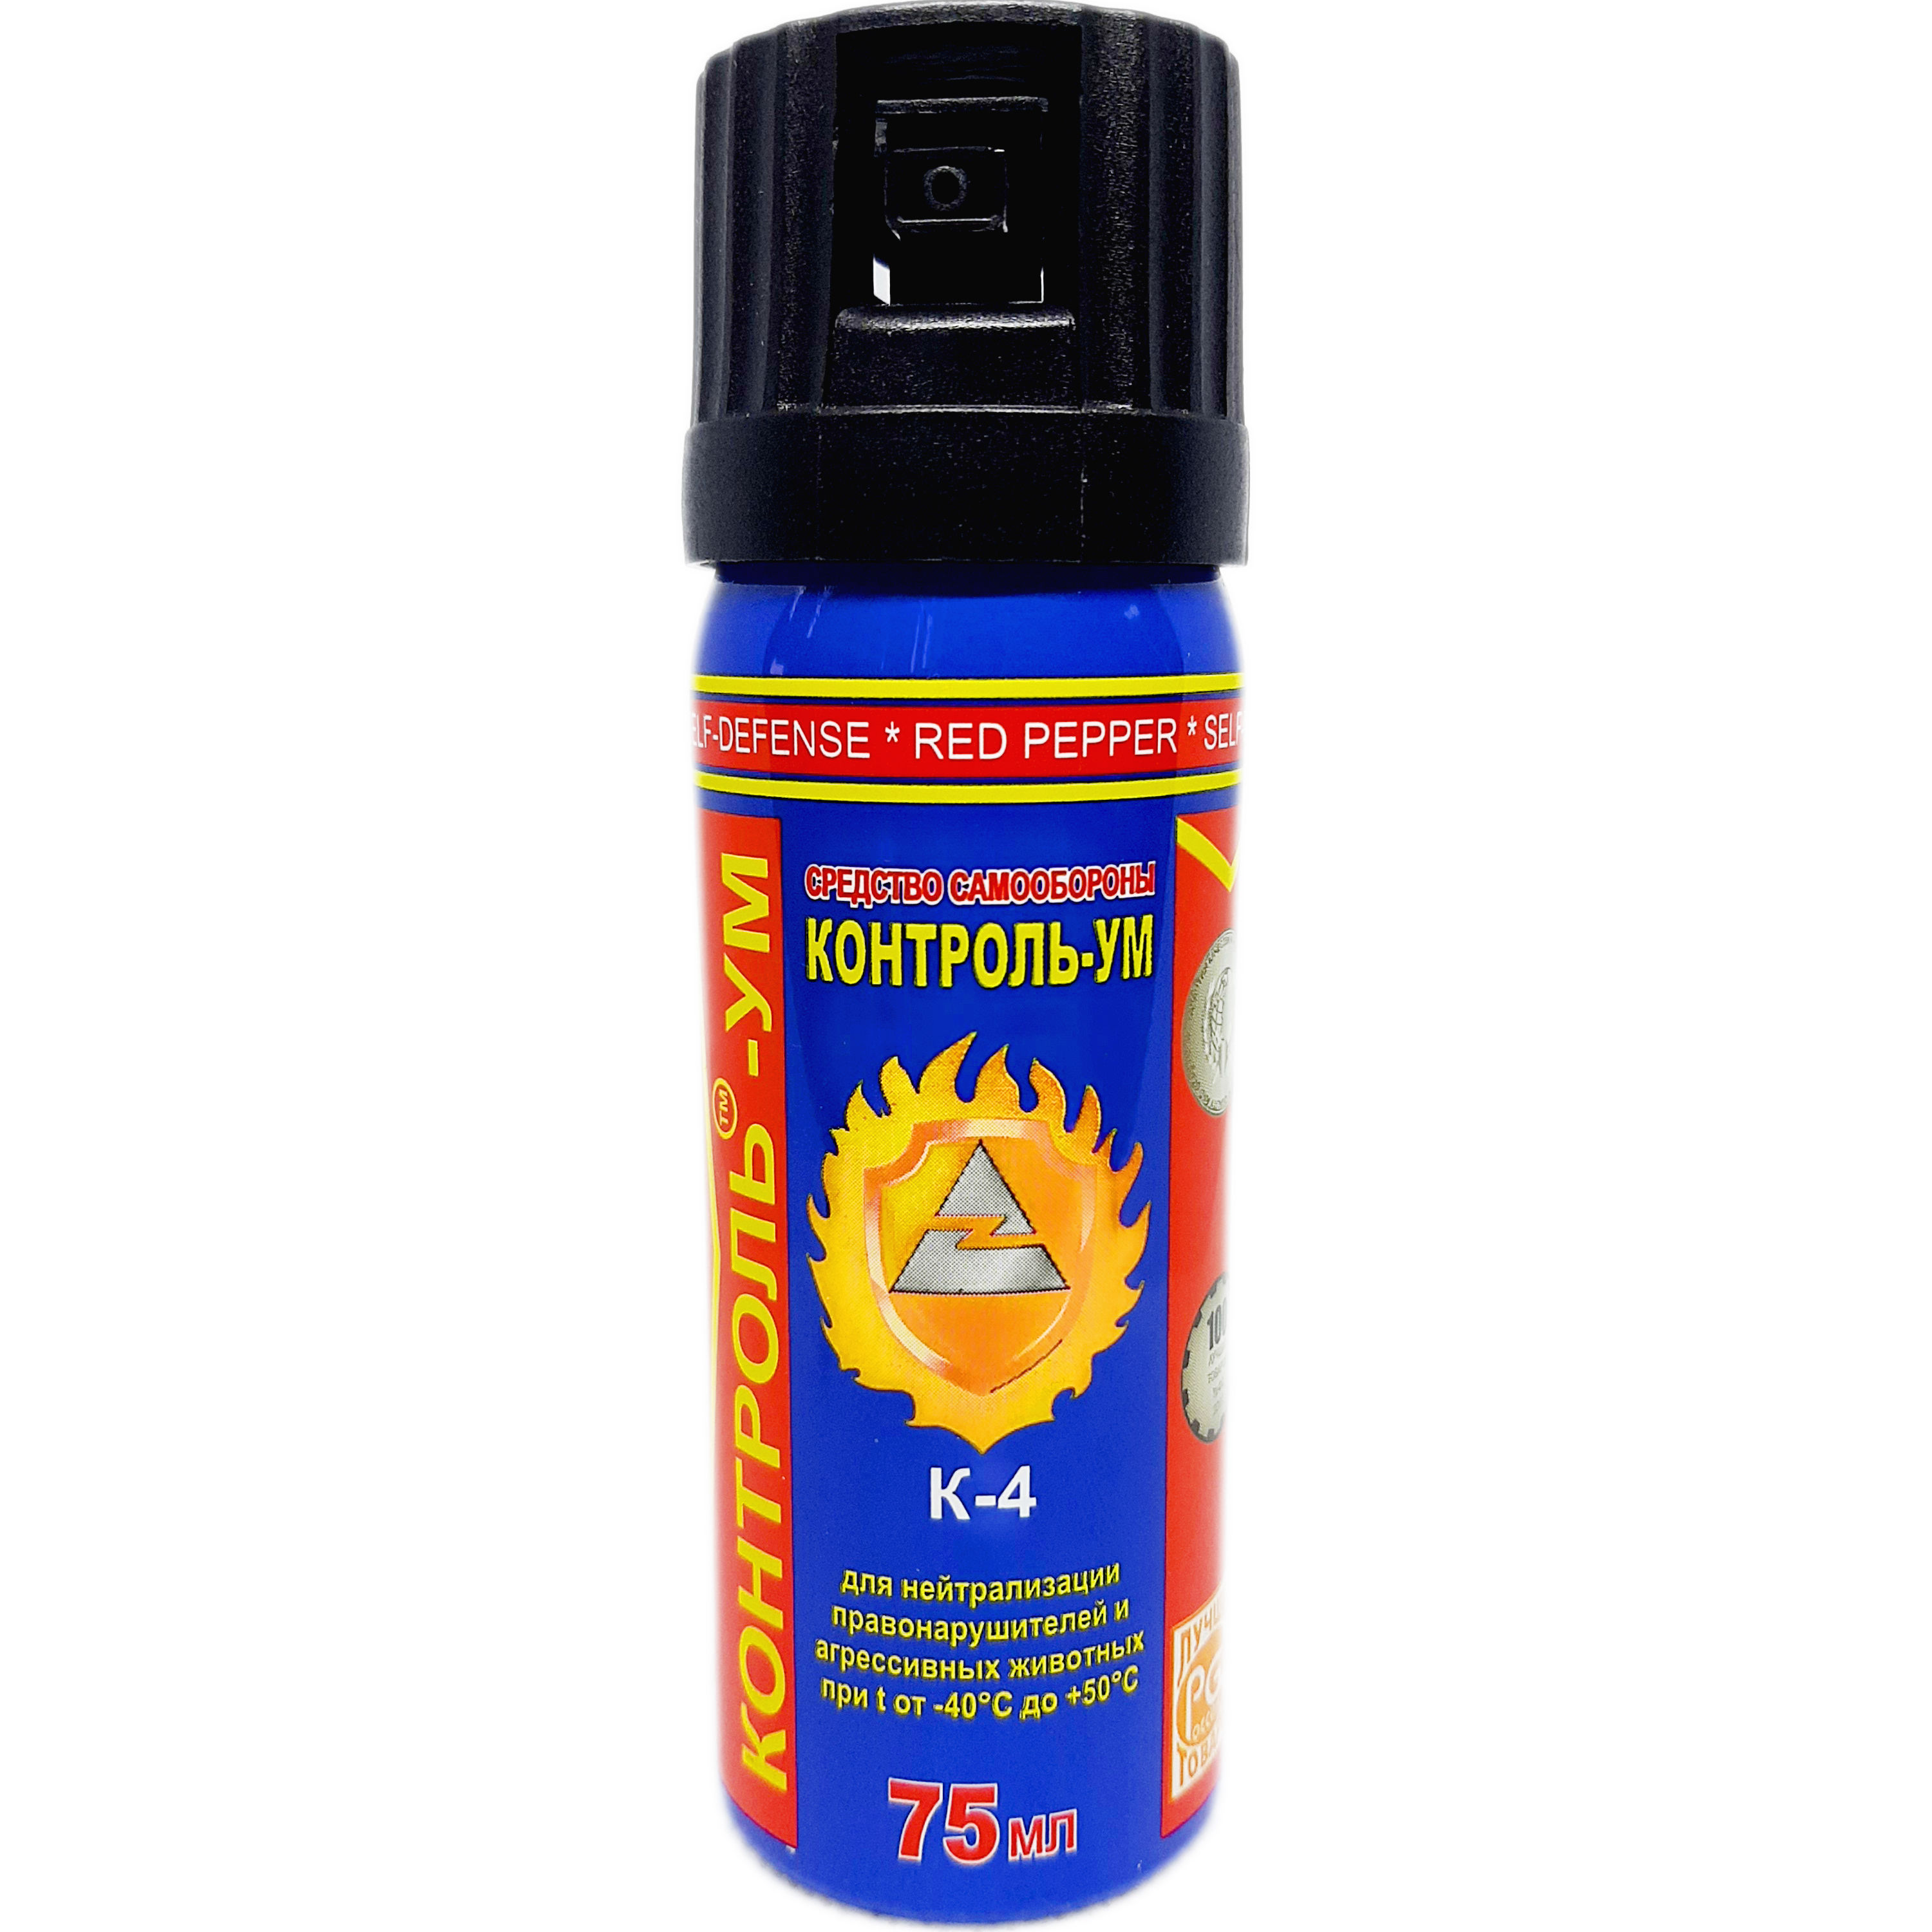 Control-UM 75 ml Personal Self Defence Pepper Spray